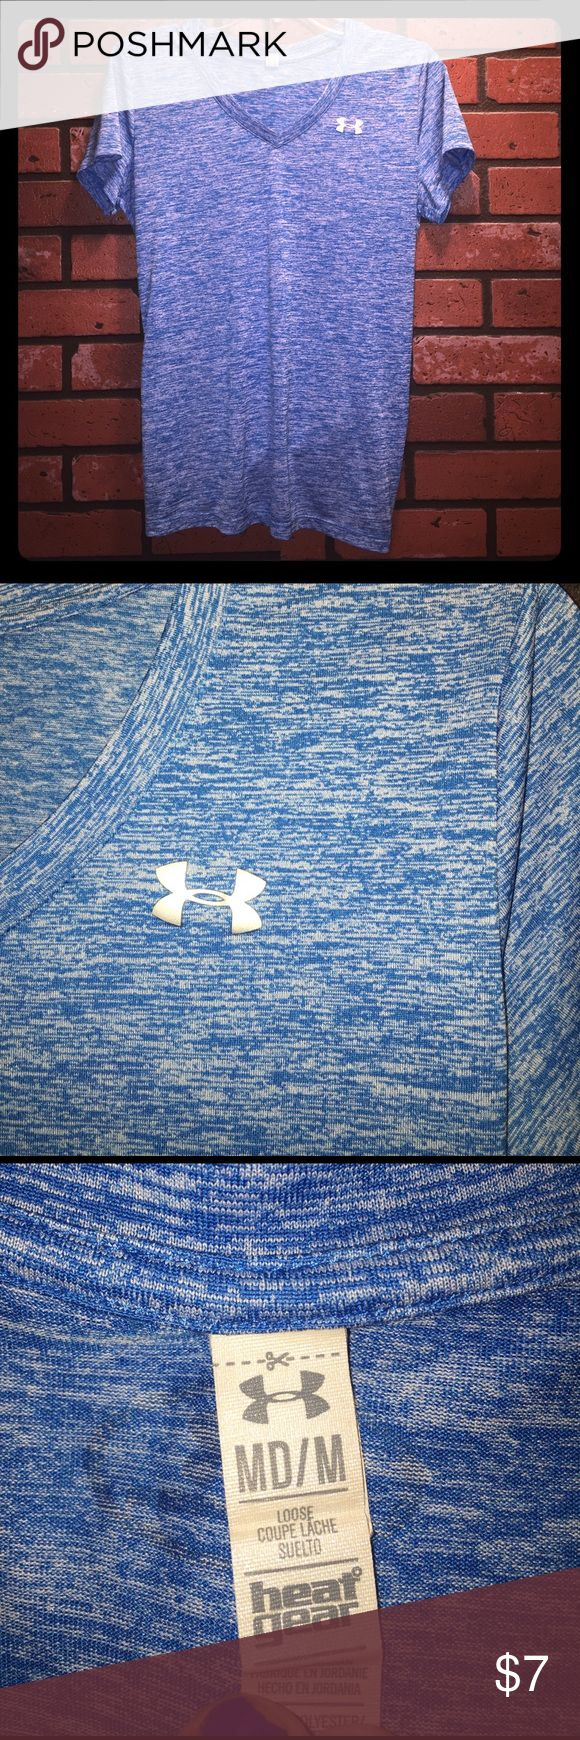 Under Armour T Shirt This is a blue under armour women's top. lightly worn. Size medium. Under Armour Tops Tees - Short Sleeve